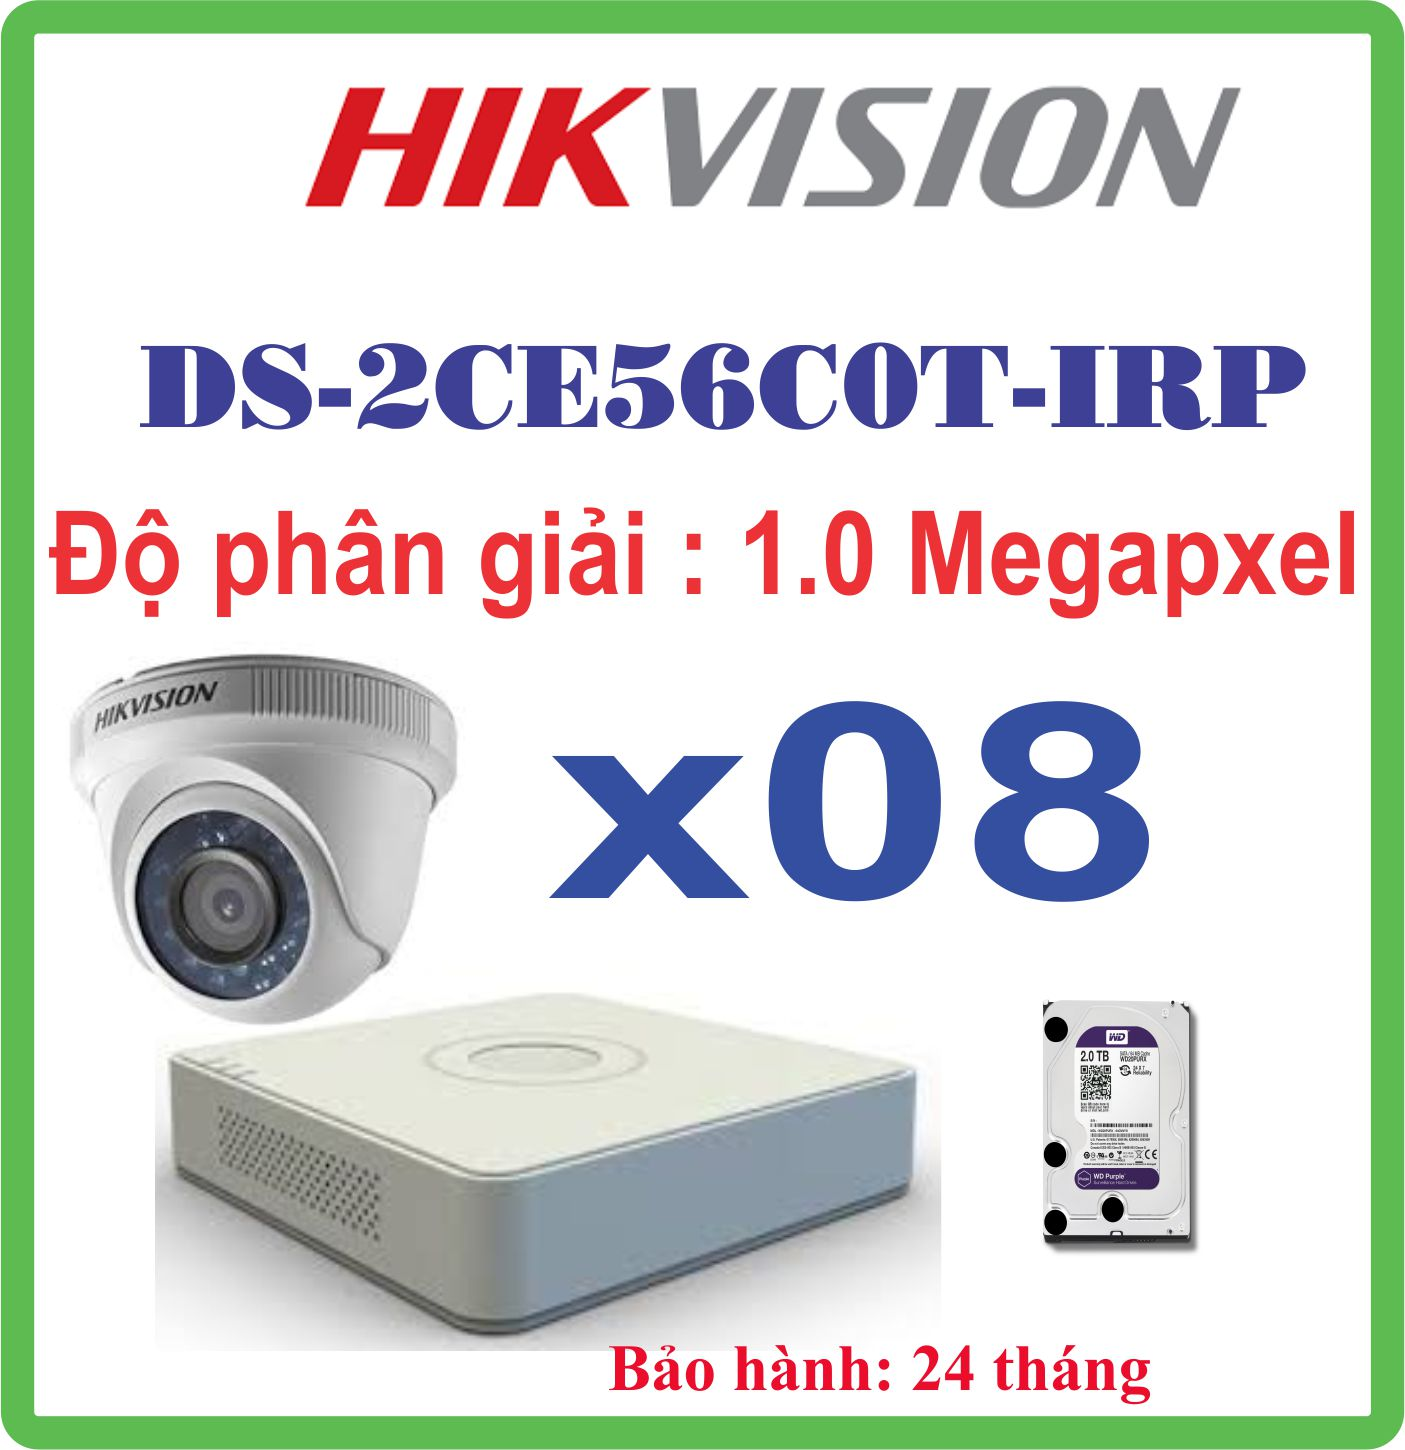 Camera Trọn Bộ 08 CAMERA HIKVISION DS-2CE56COT IRP Giá Rẻ